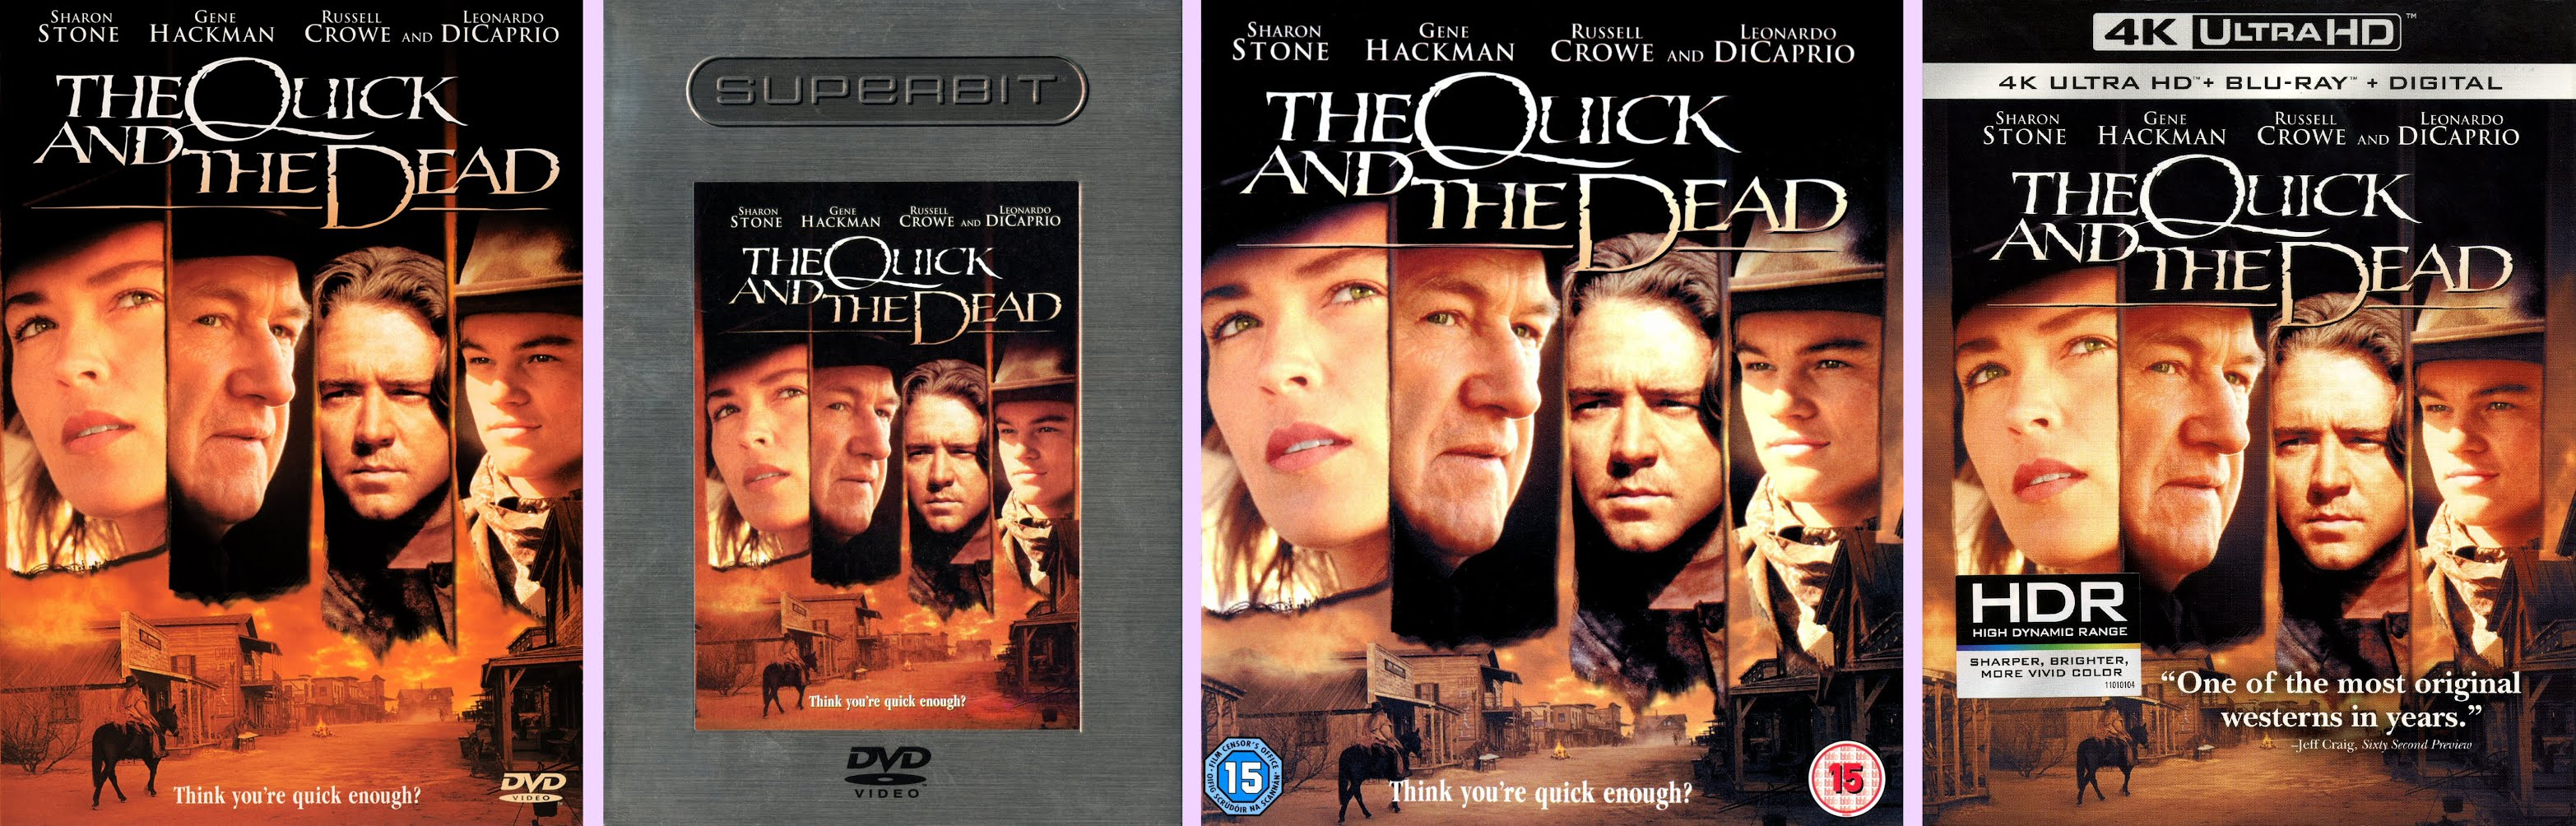 the quick and the dead 1995 cast